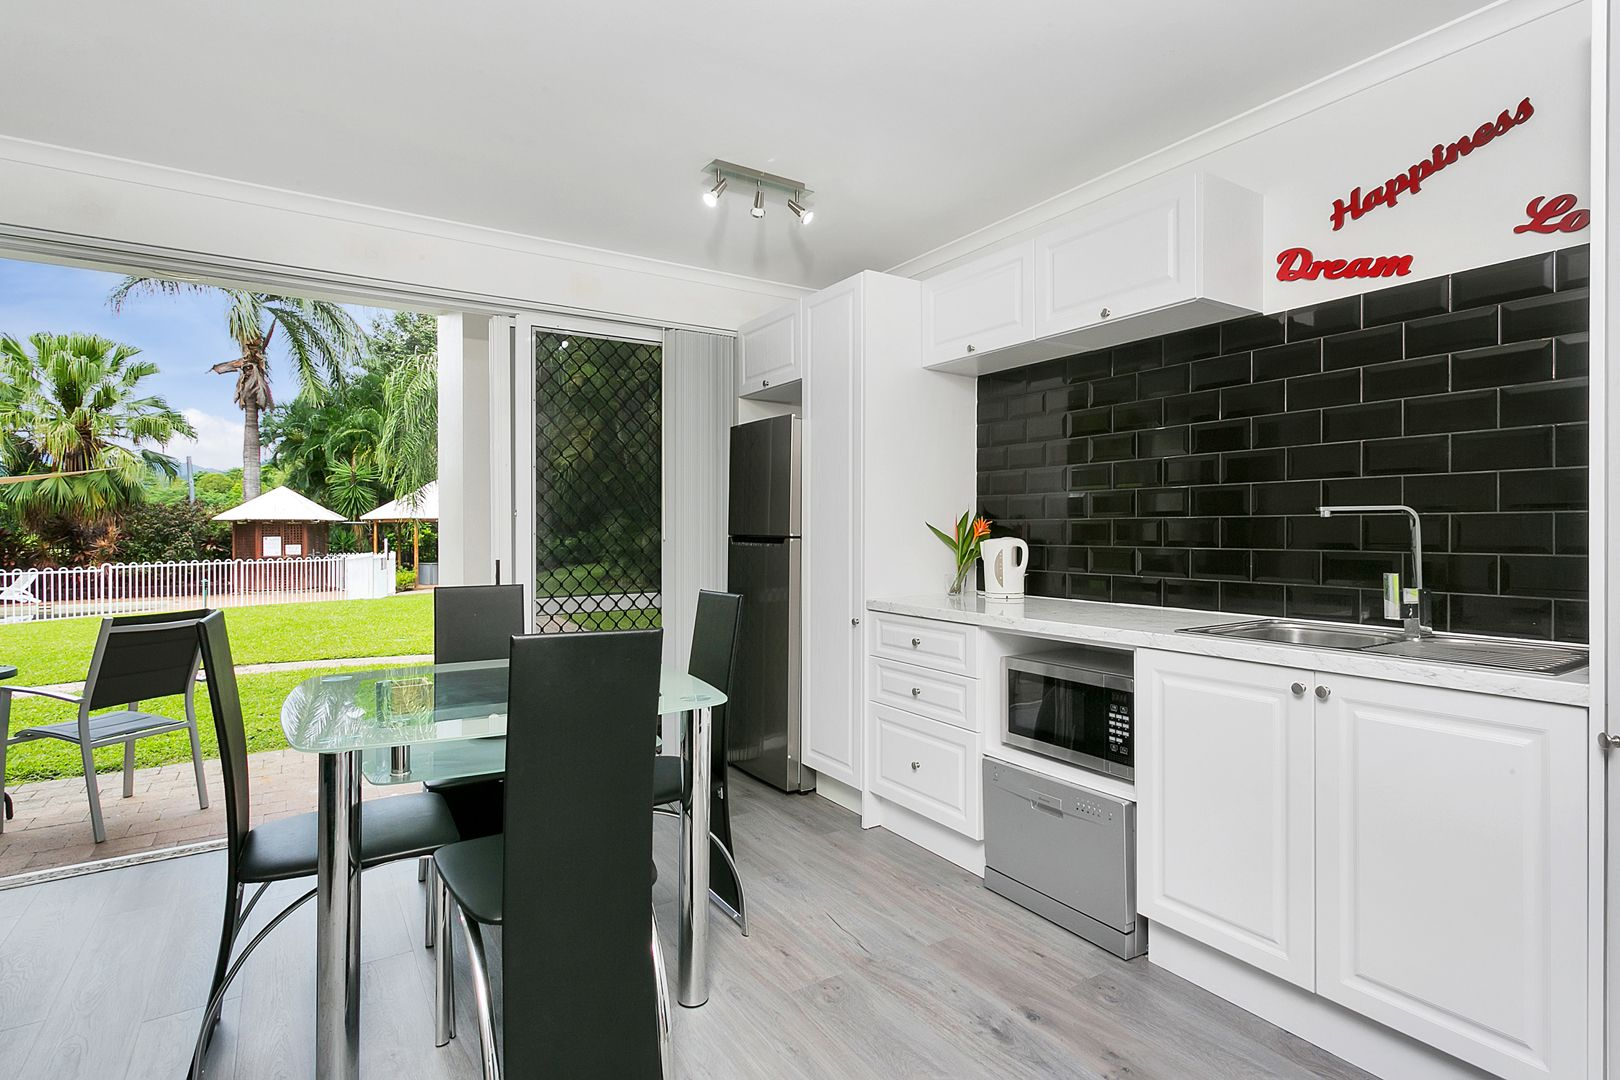 403/305-341 Coral Coast Drive, Palm Cove QLD 4879, Image 0